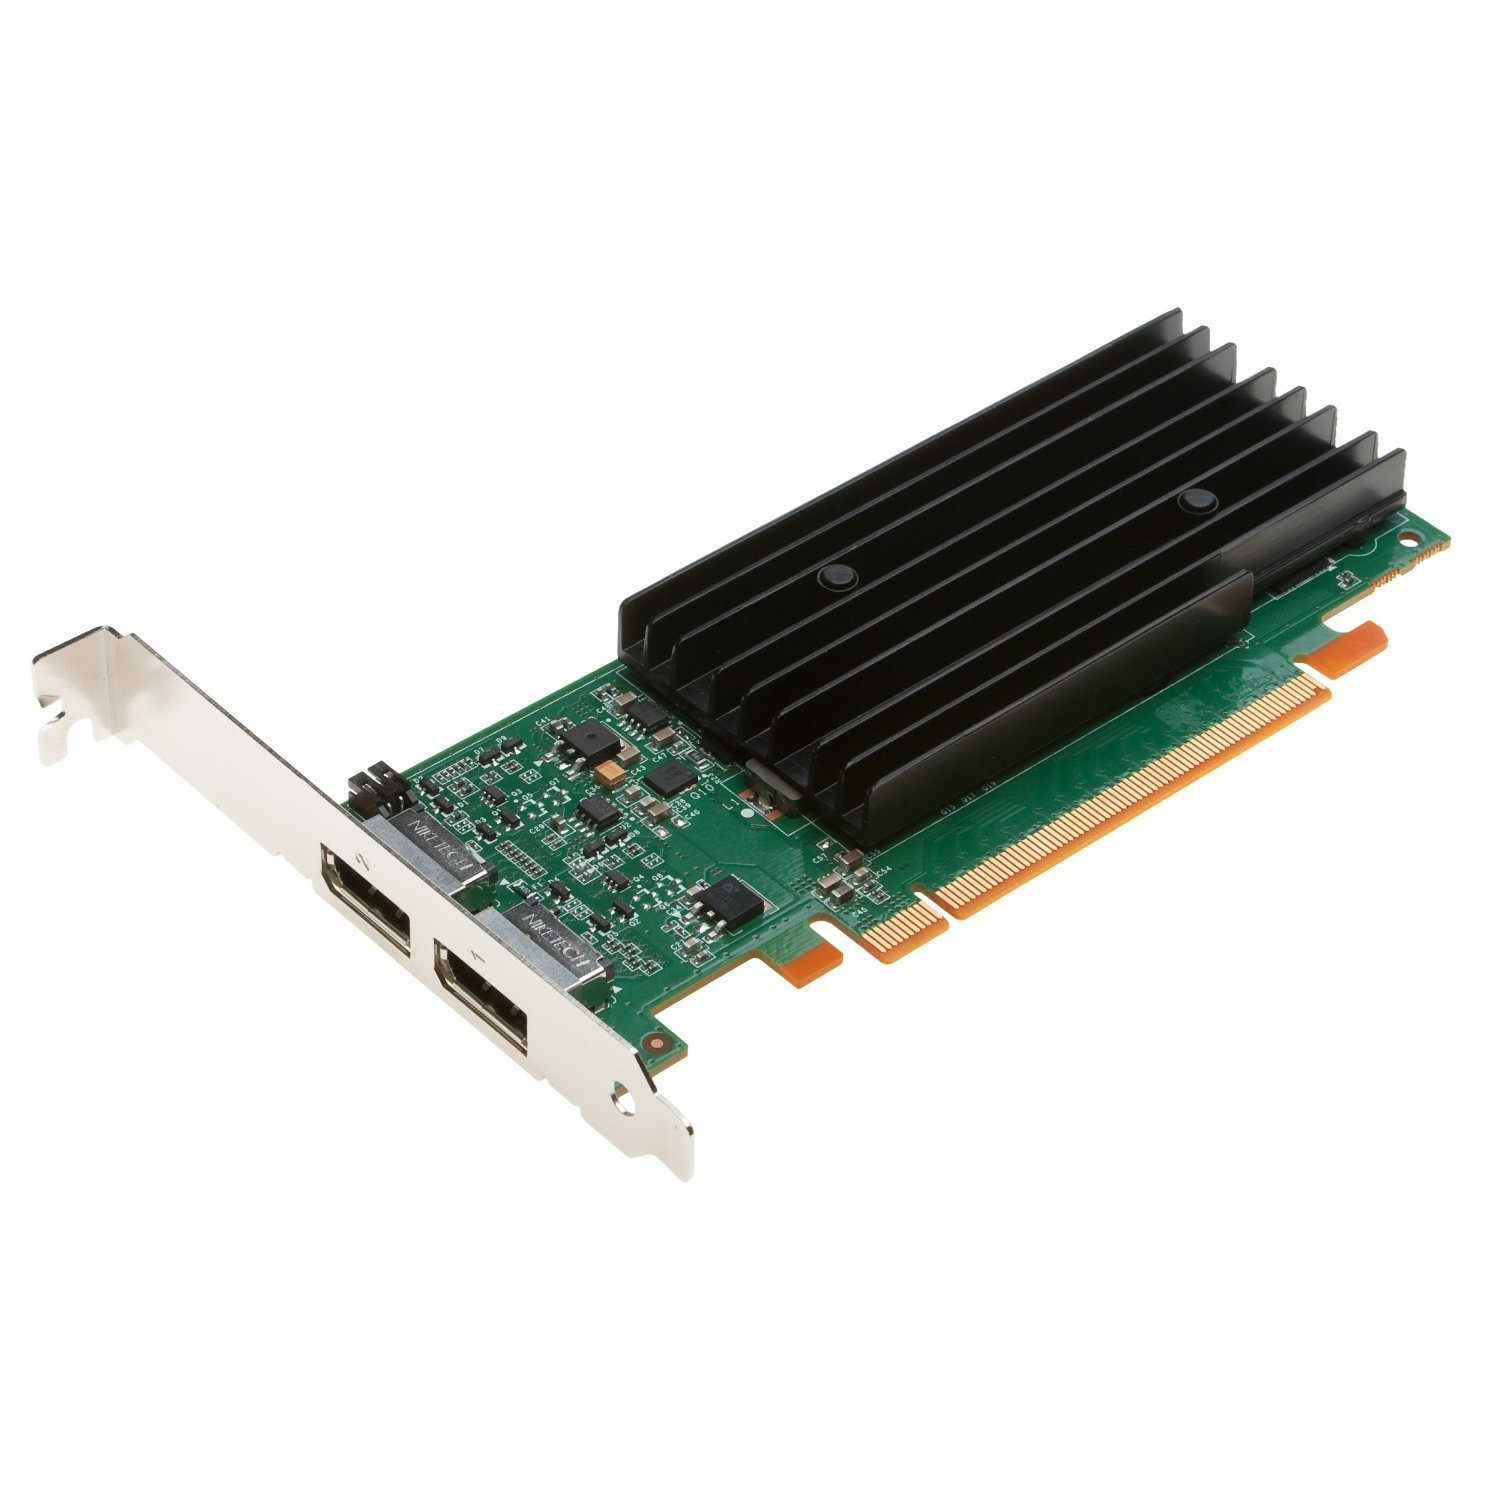 NVIDIA Quadro NVS 295 by PNY 256MB GDDR3 PCI Express Gen 2 x16 Dual DisplayPort or DVI-D SL Profesional Business Graphics Board, VCQ295NVS-X16-DVI-PB